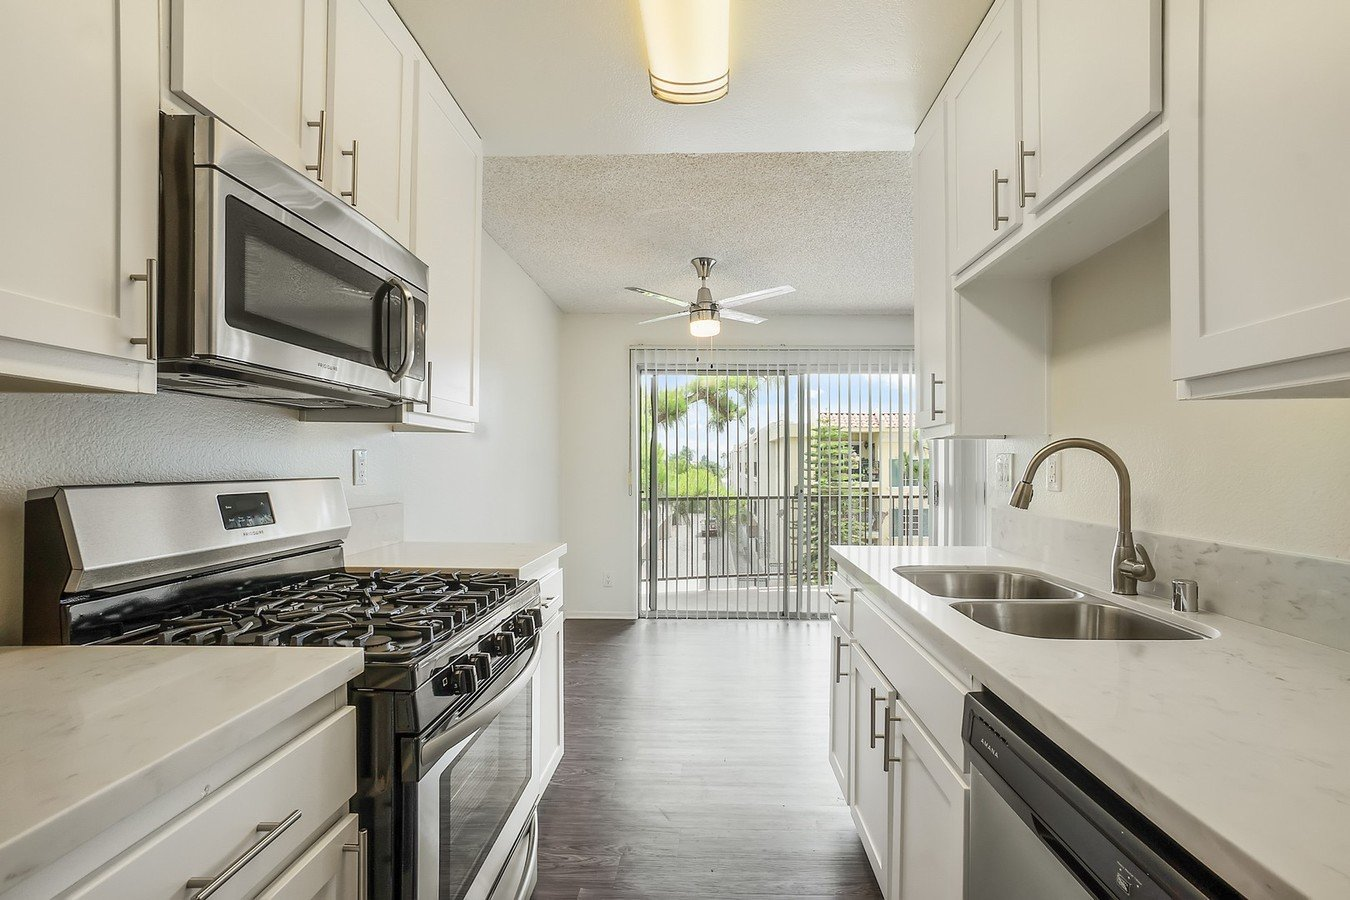 2 Bedrooms 2 Bathrooms Apartment for rent at Chateau Vincennes in Northridge, CA